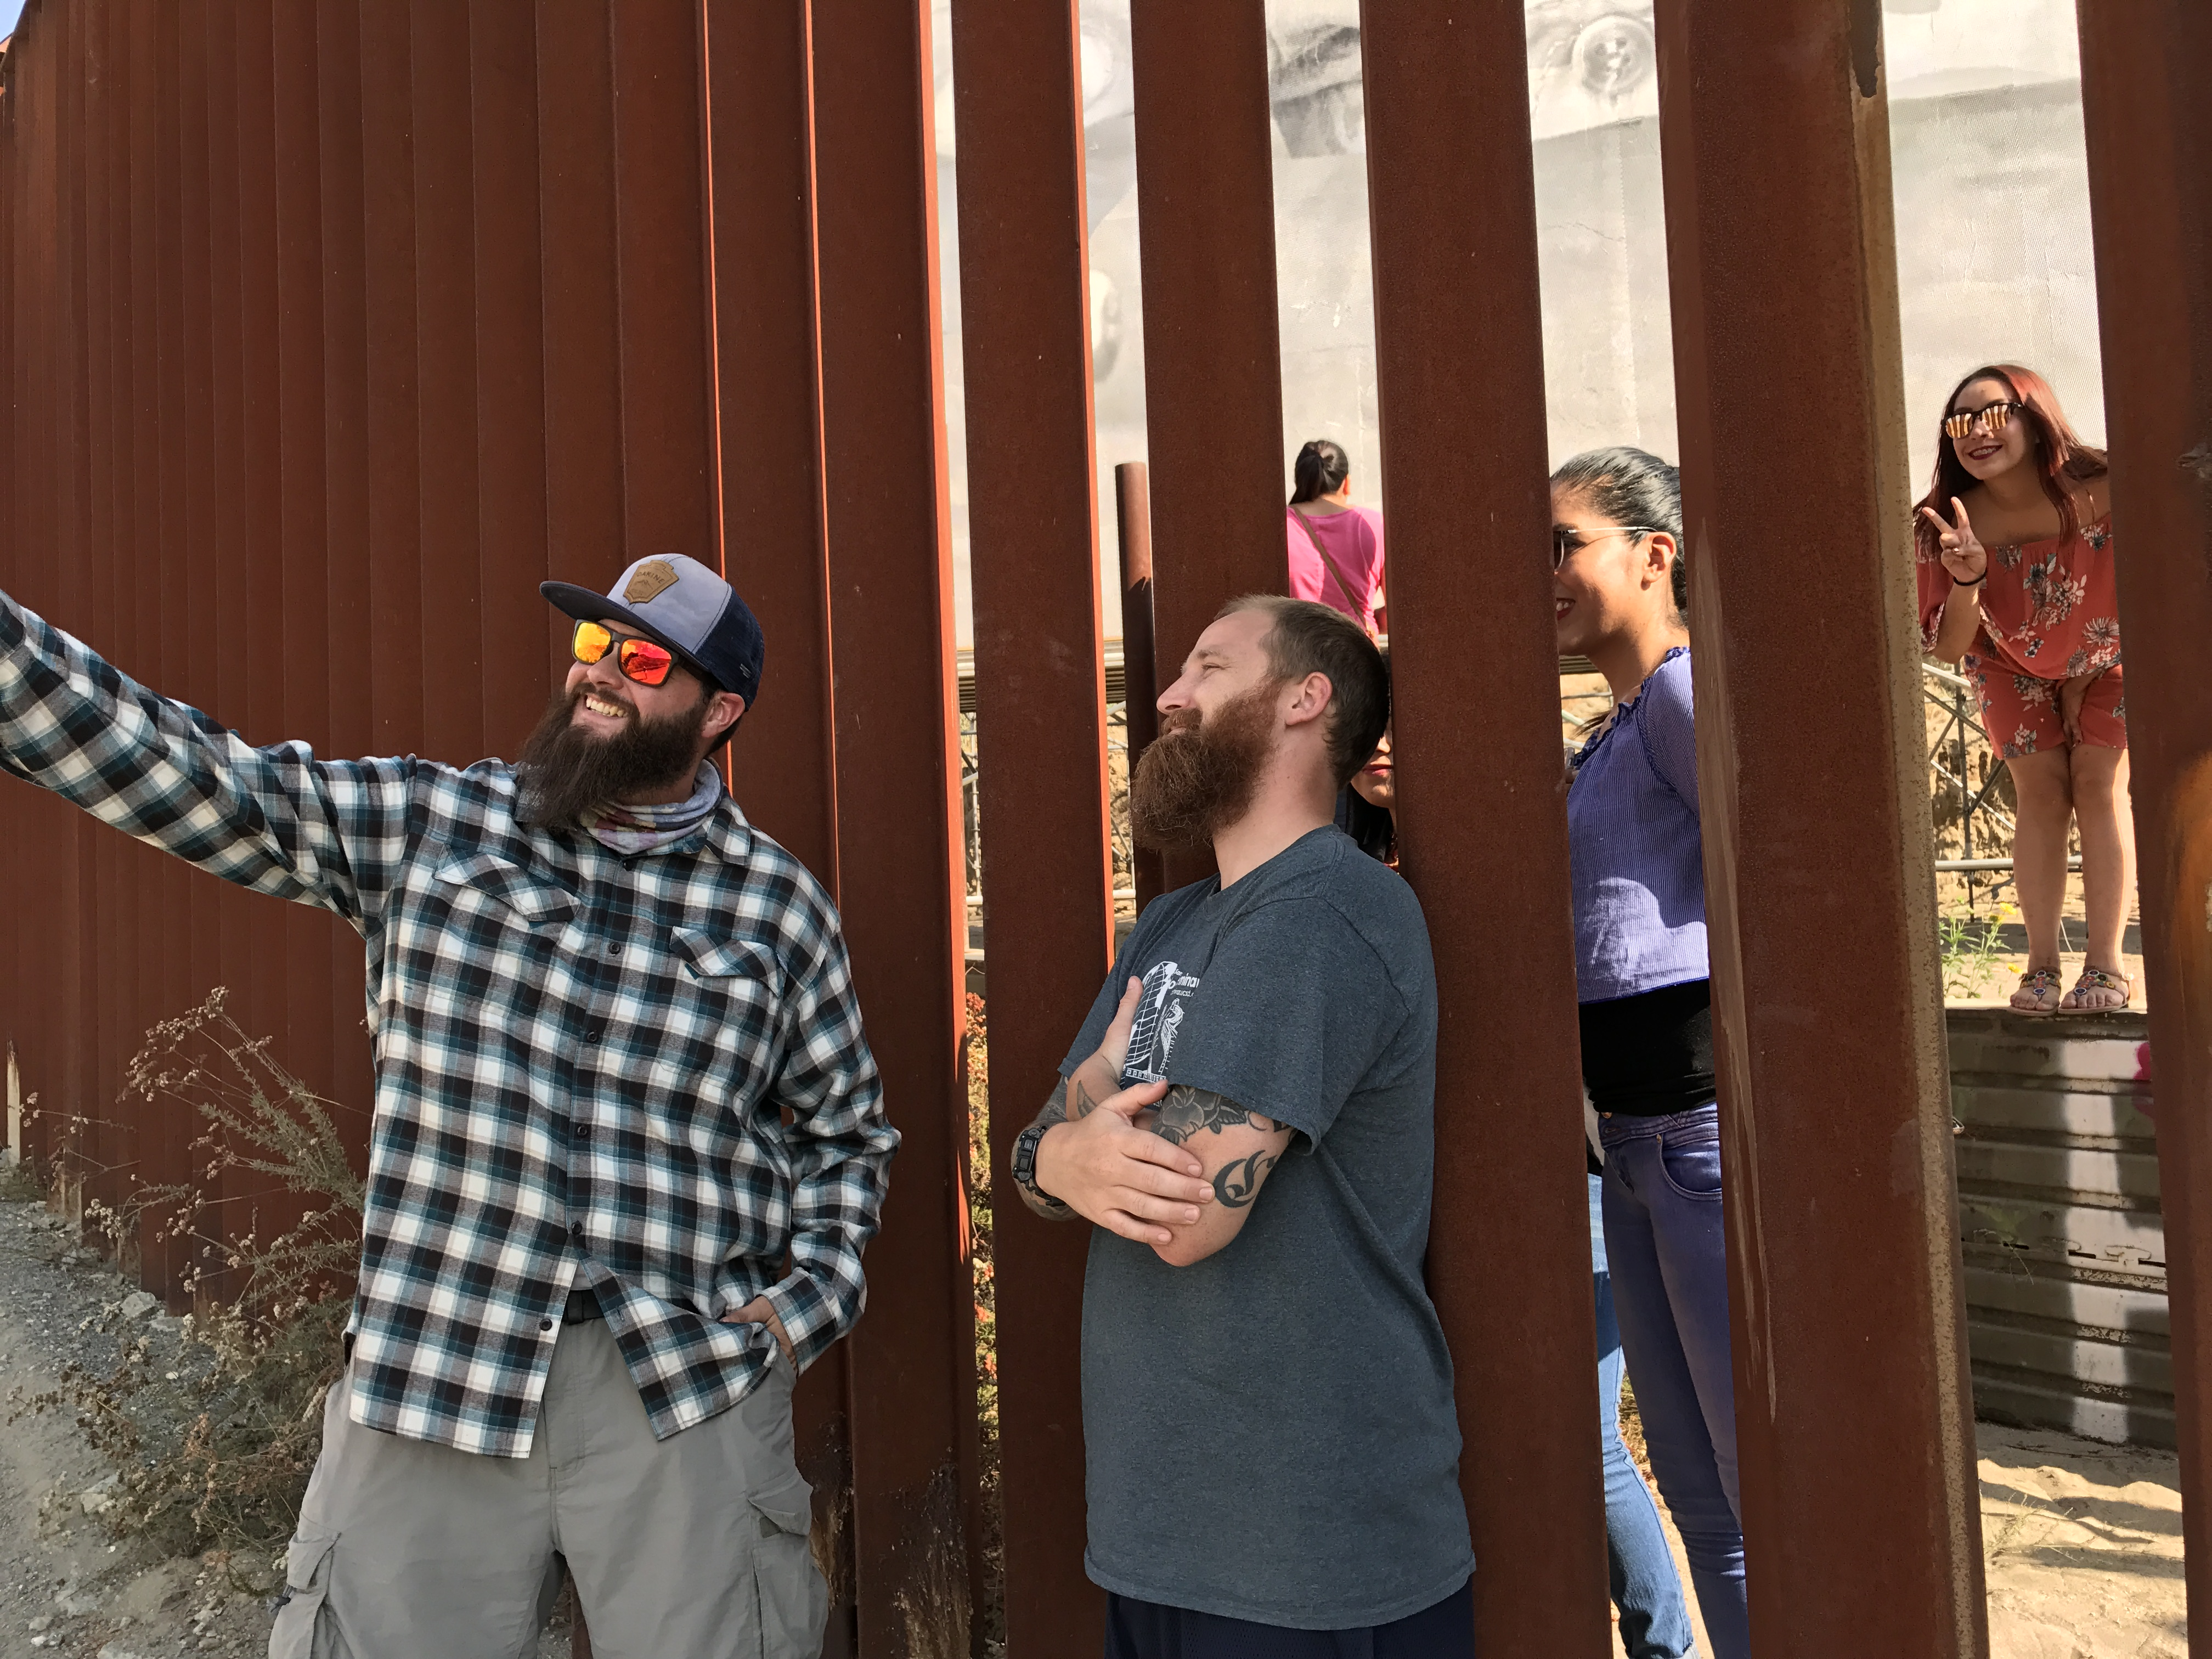 Two smiling men in beards hold up a phone as they stand in front of fence; on other side, you can see women smiling and making the peace sign with their fingers